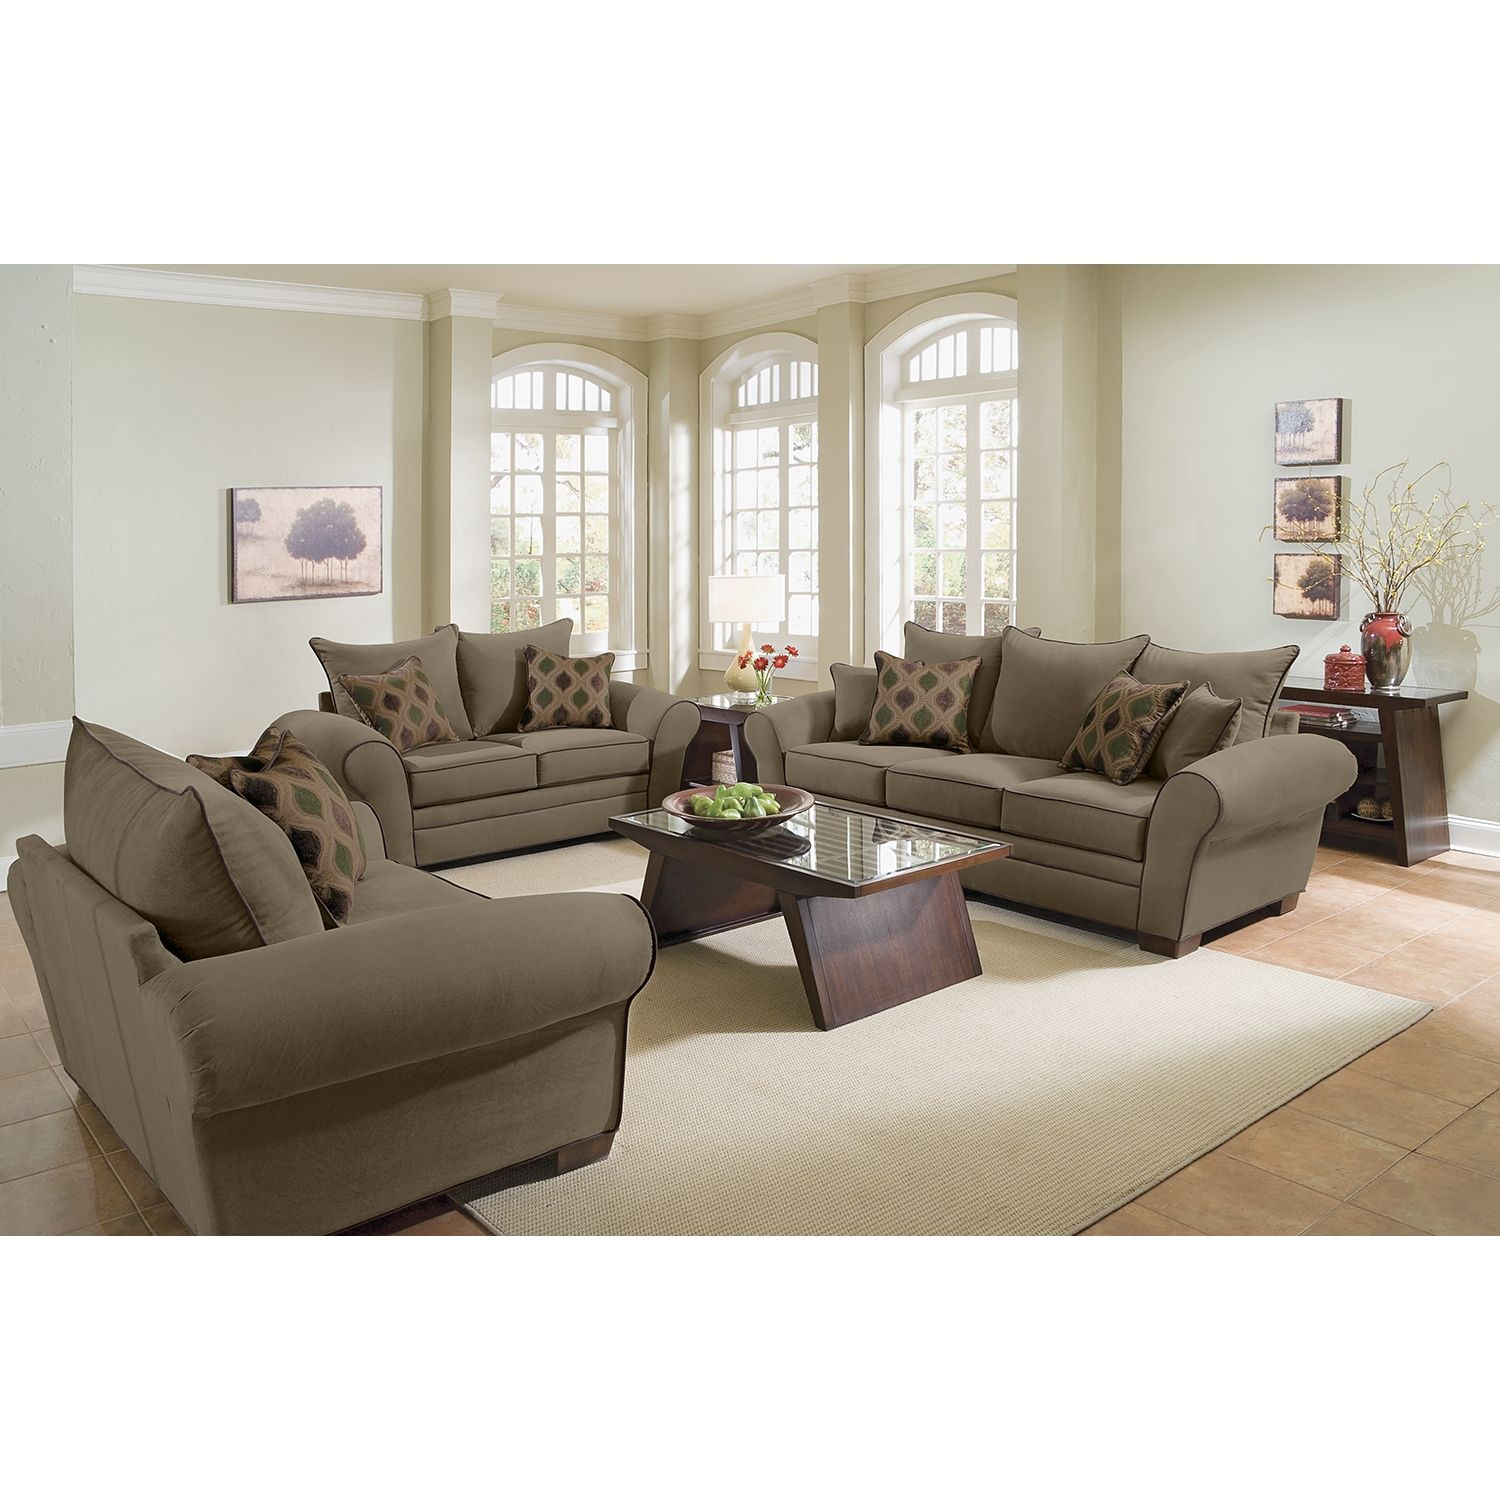 Rendezvous Sofa Value City Furniture Value City Furniture Furniture City Furniture #value #city #living #room #chairs